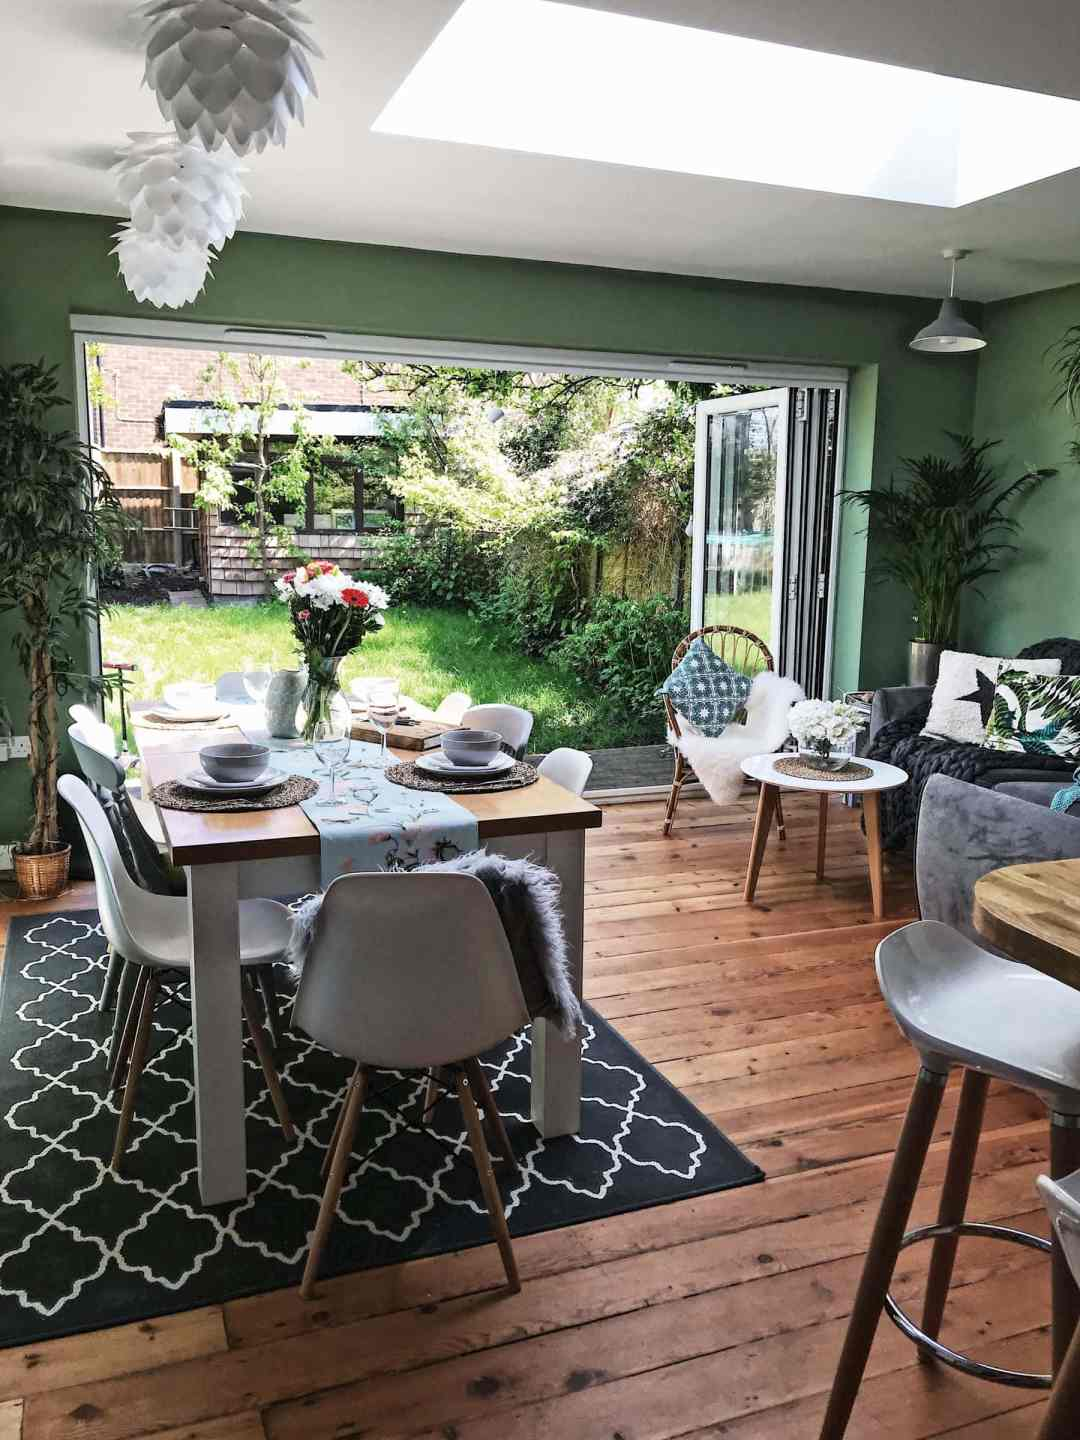 Bringing the Outside In – 7 Plants for your Home